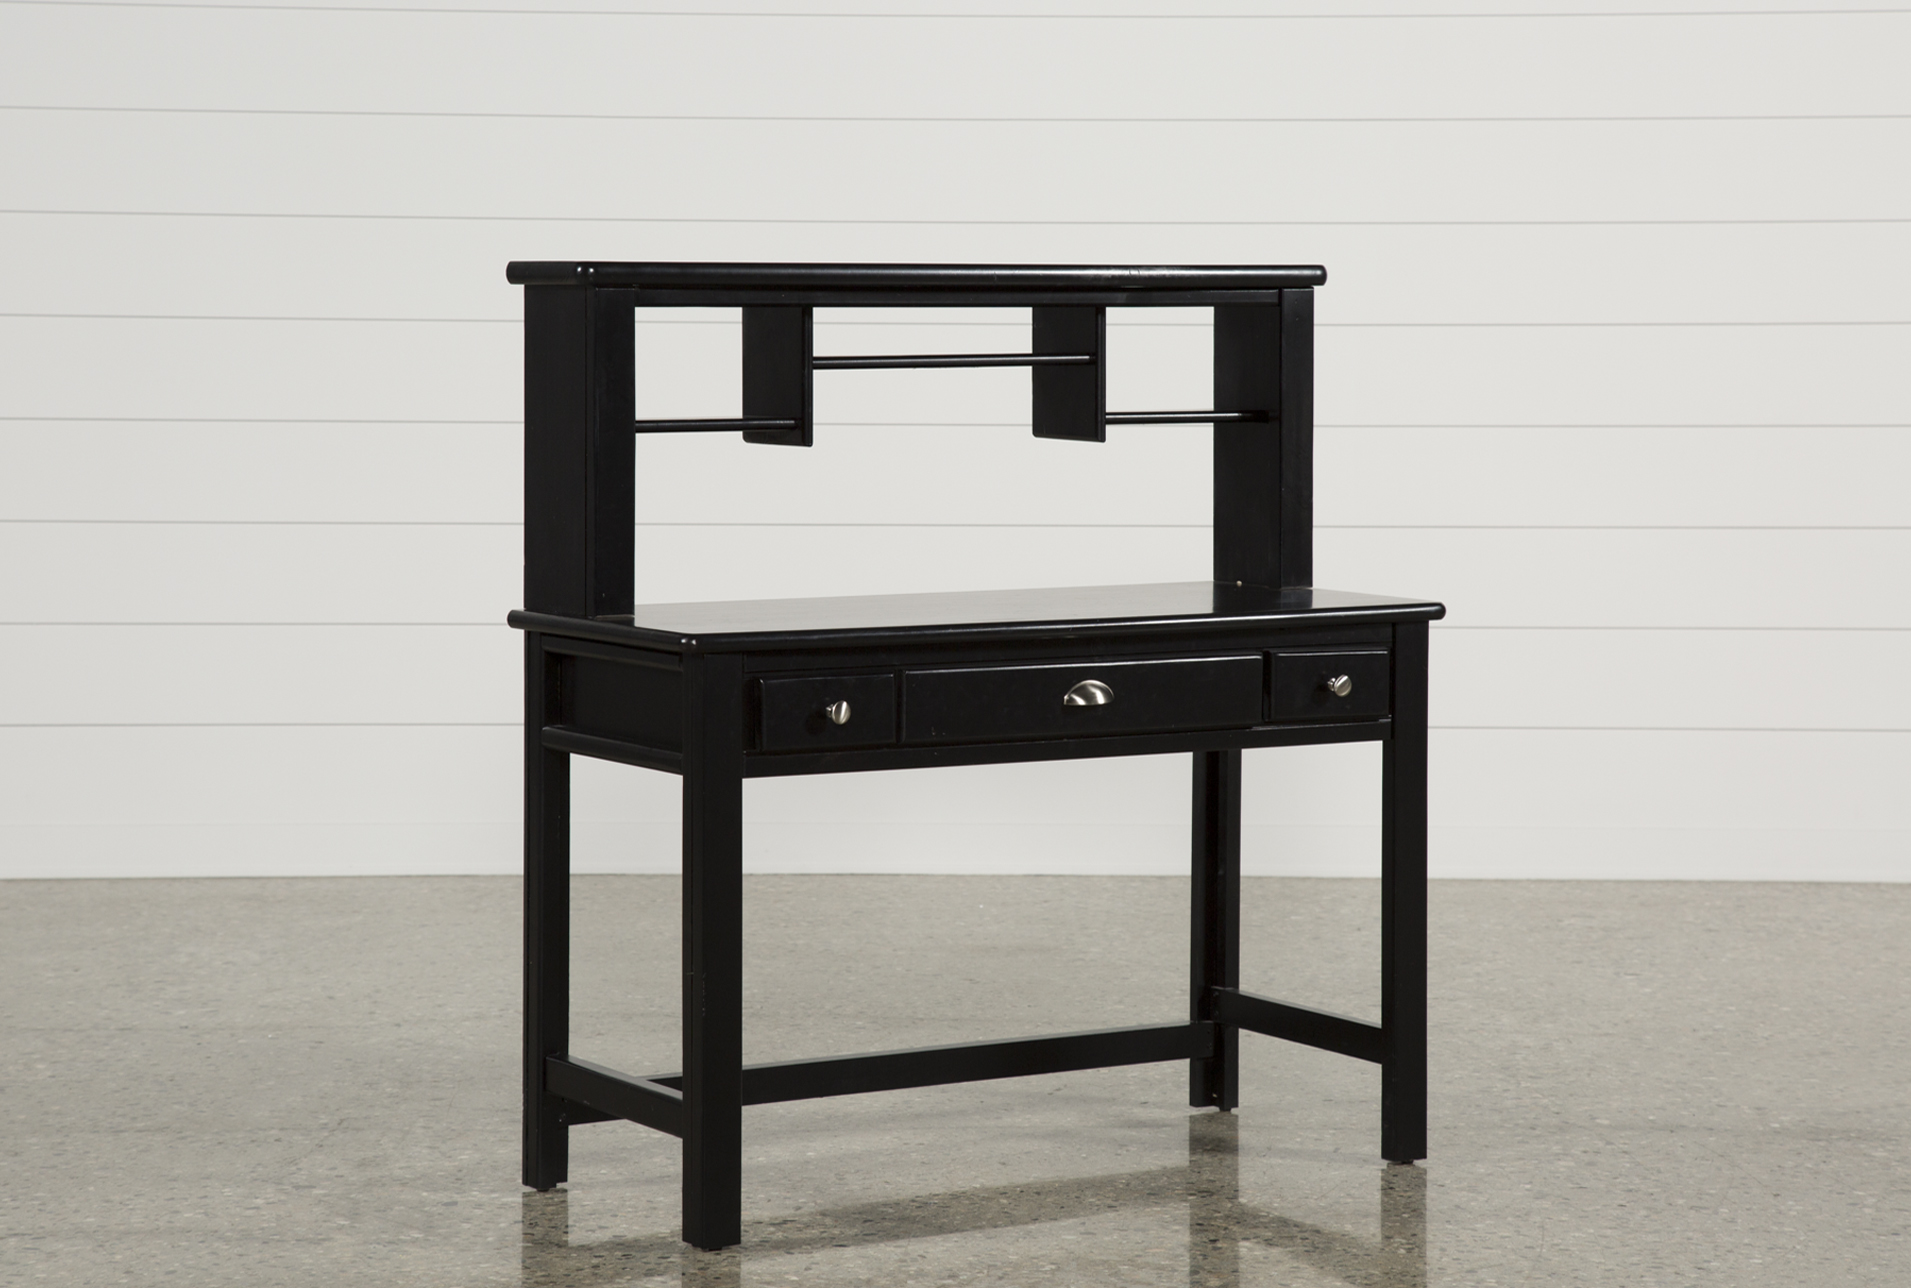 summit black desk/hutch (qty: 1) has been successfully added to your FCRHXRY